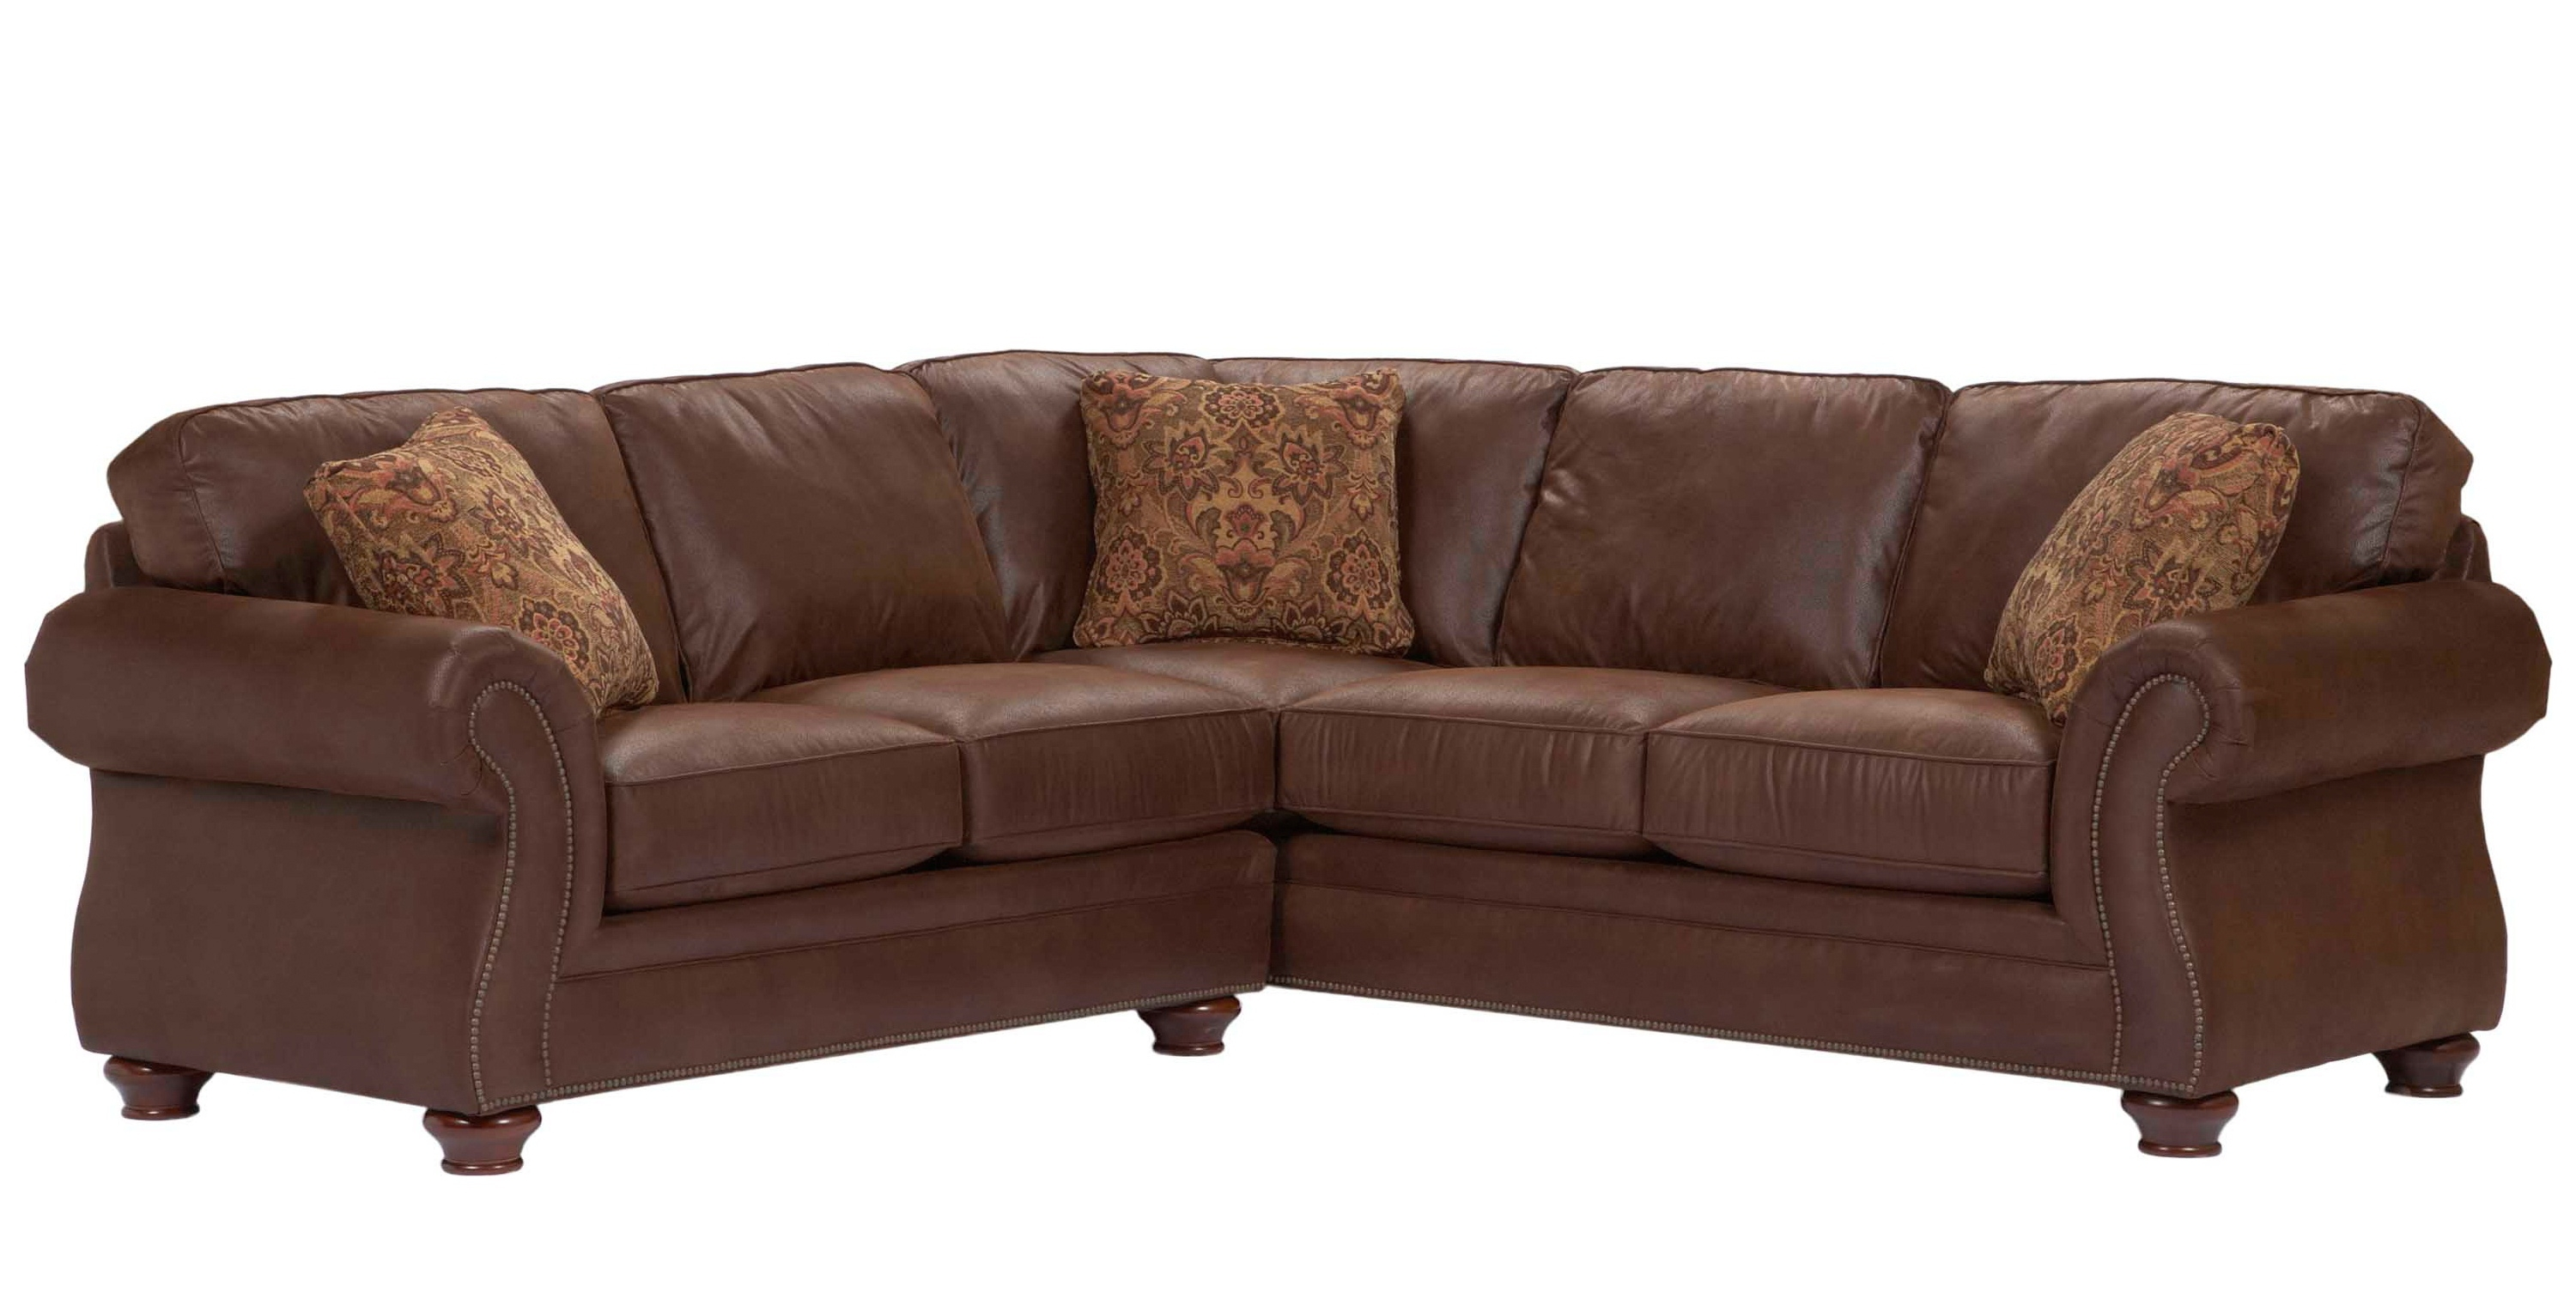 Well Known Broyhill Sectional Sofas Within Broyhill Laramie Sectional 5080 1Q/5080 4Q (View 18 of 20)